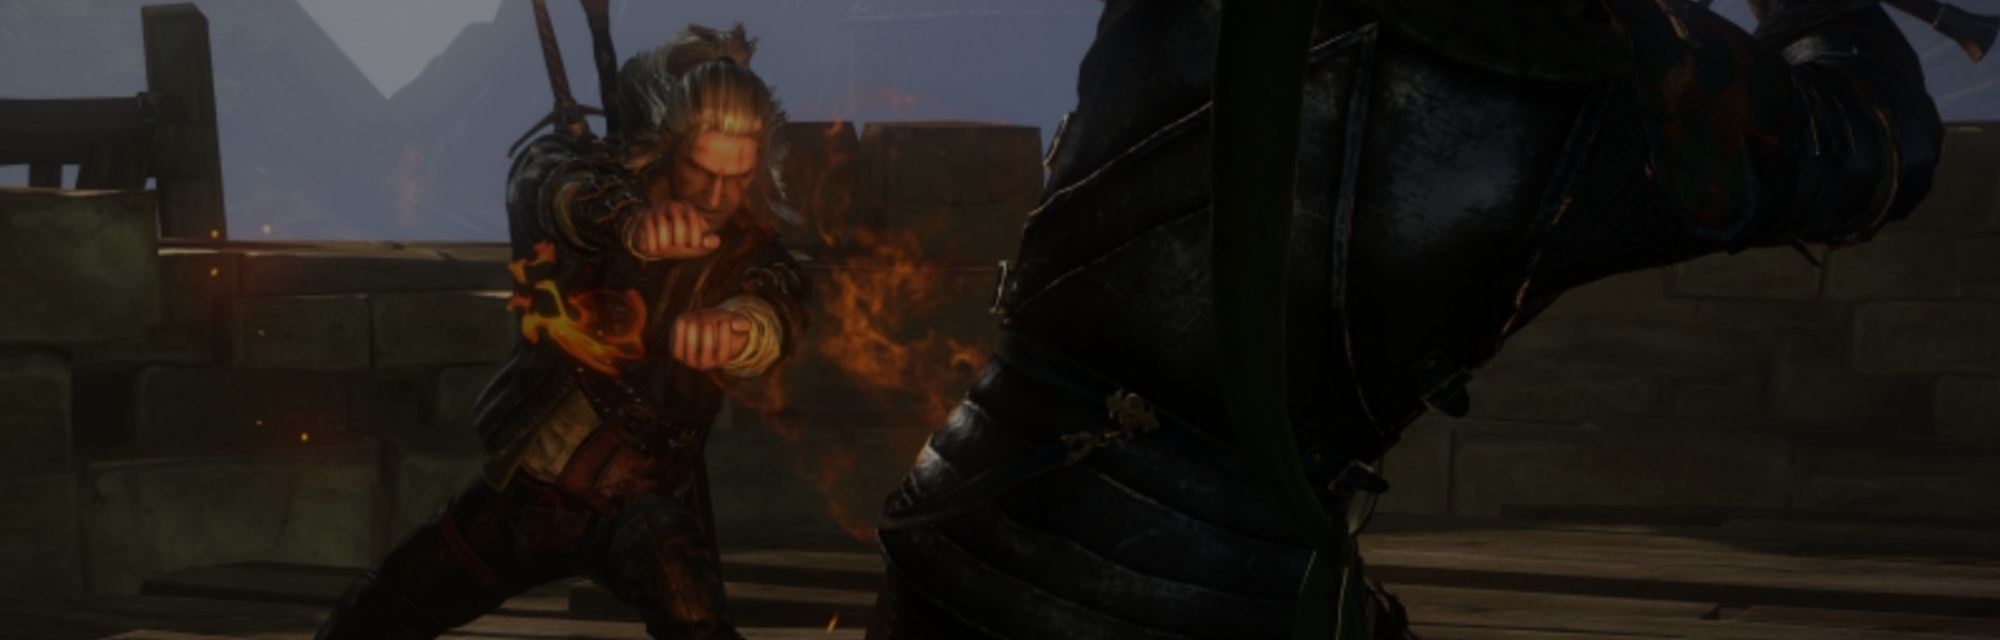 Screenshot from 'The Witcher' video game.